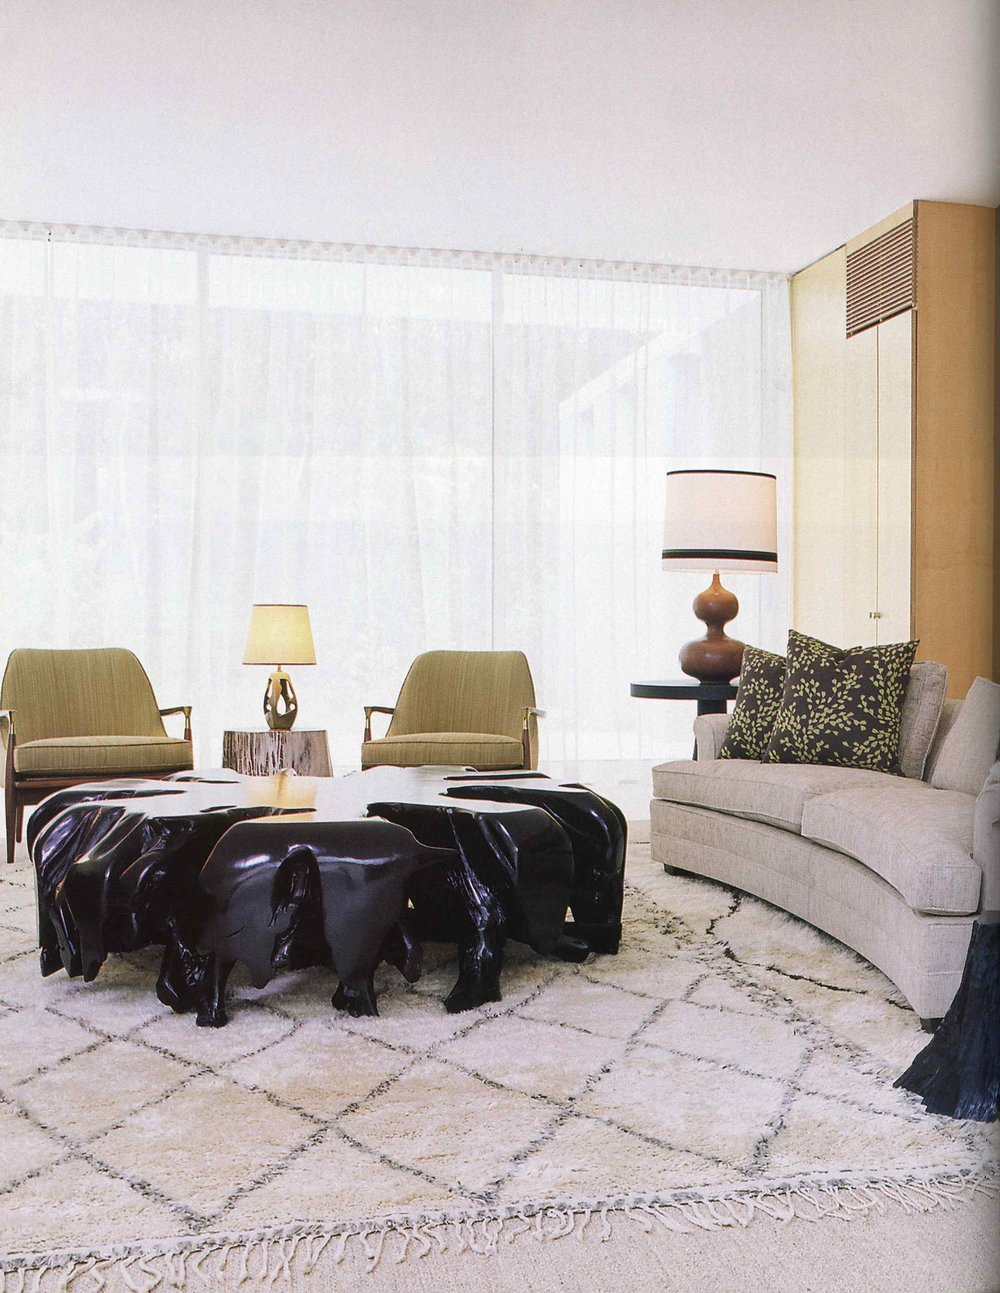 Met Home_Nov 08_Hamptons House_Full Article_Page_04.jpg